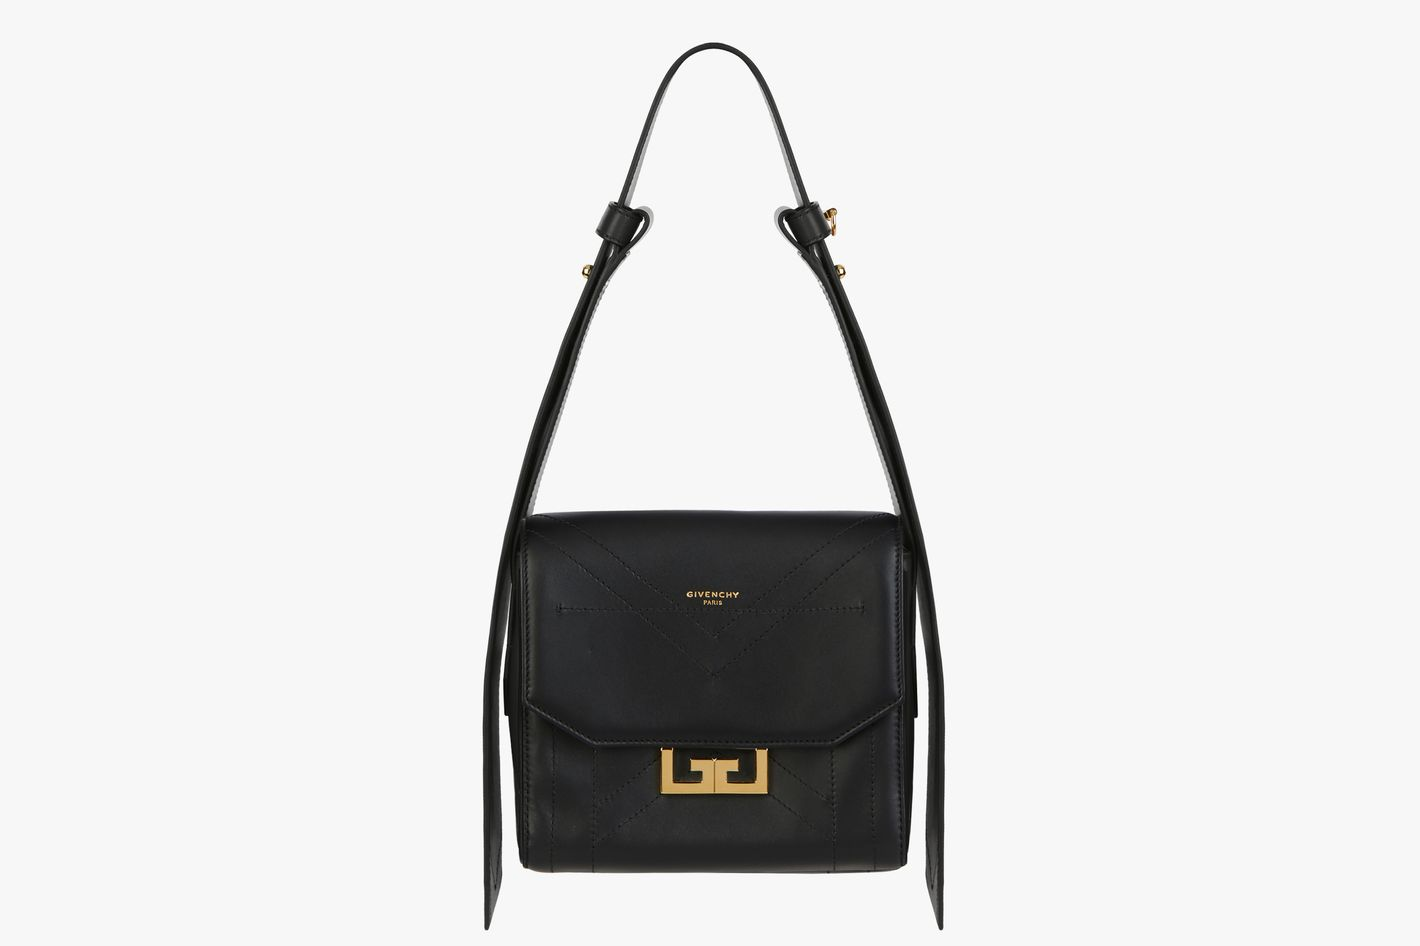 Givenchy Medium Eden Bag in Smooth Leather